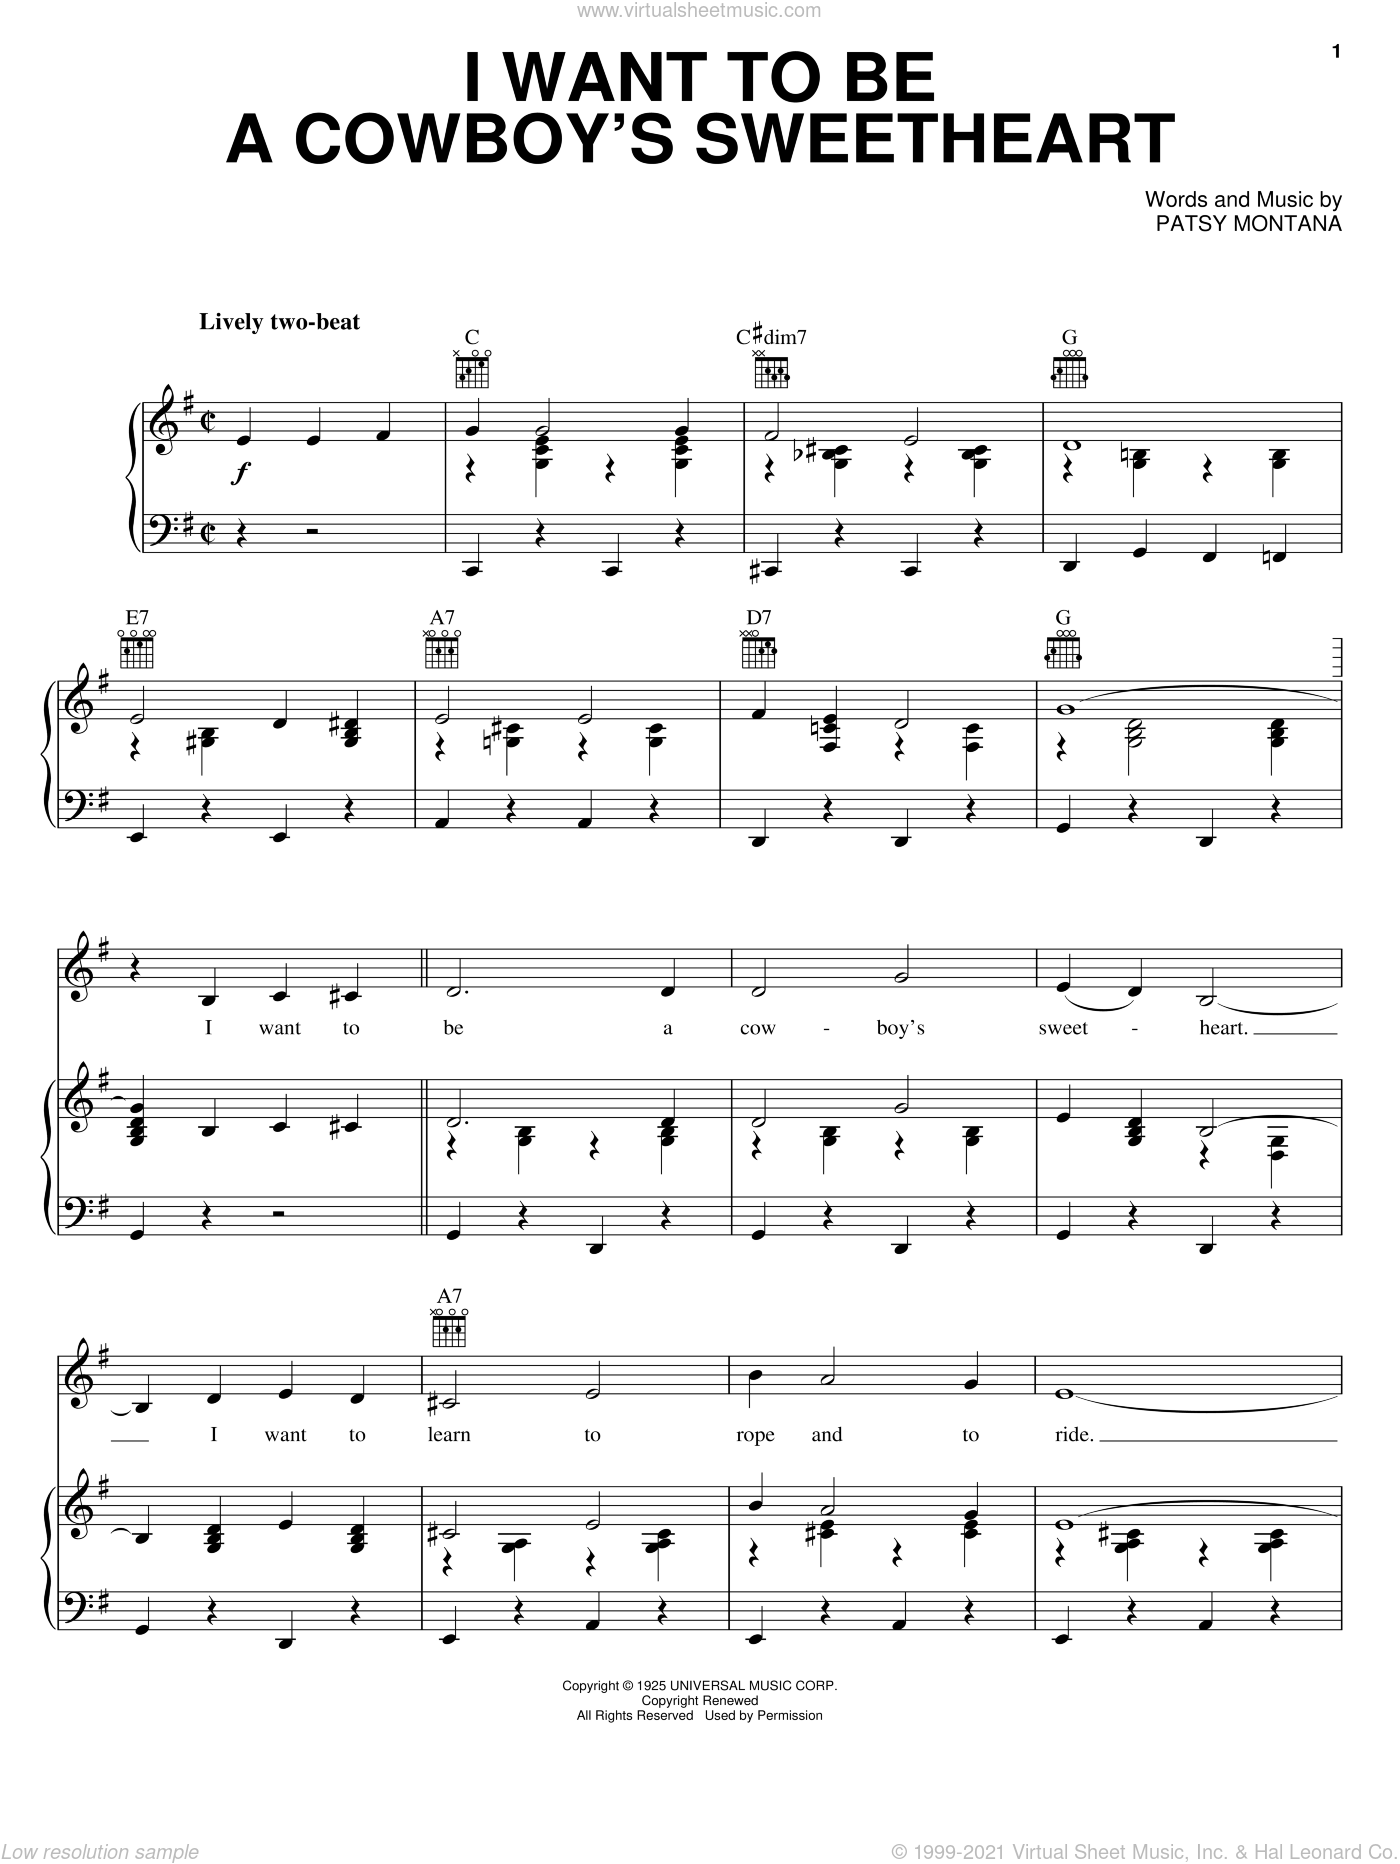 I Want To Be A Cowboy's Sweetheart sheet music for voice, piano or guitar by Patsy Montana